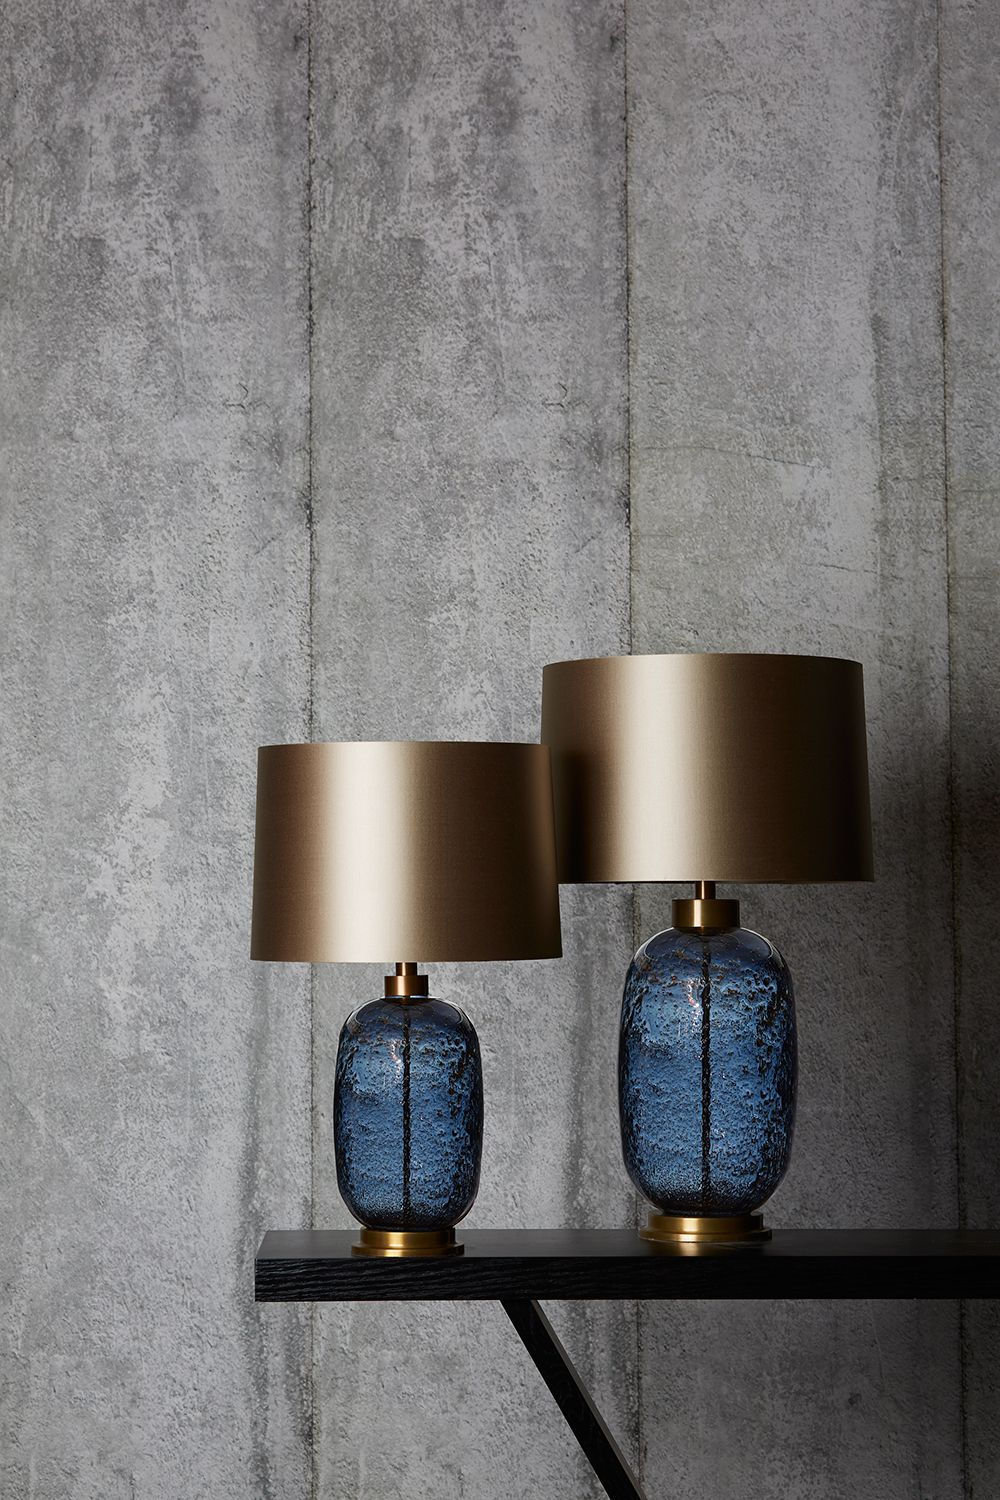 Pin by Alice Pang on 17 DECORATIVE LIGHT - Table Lamp ...